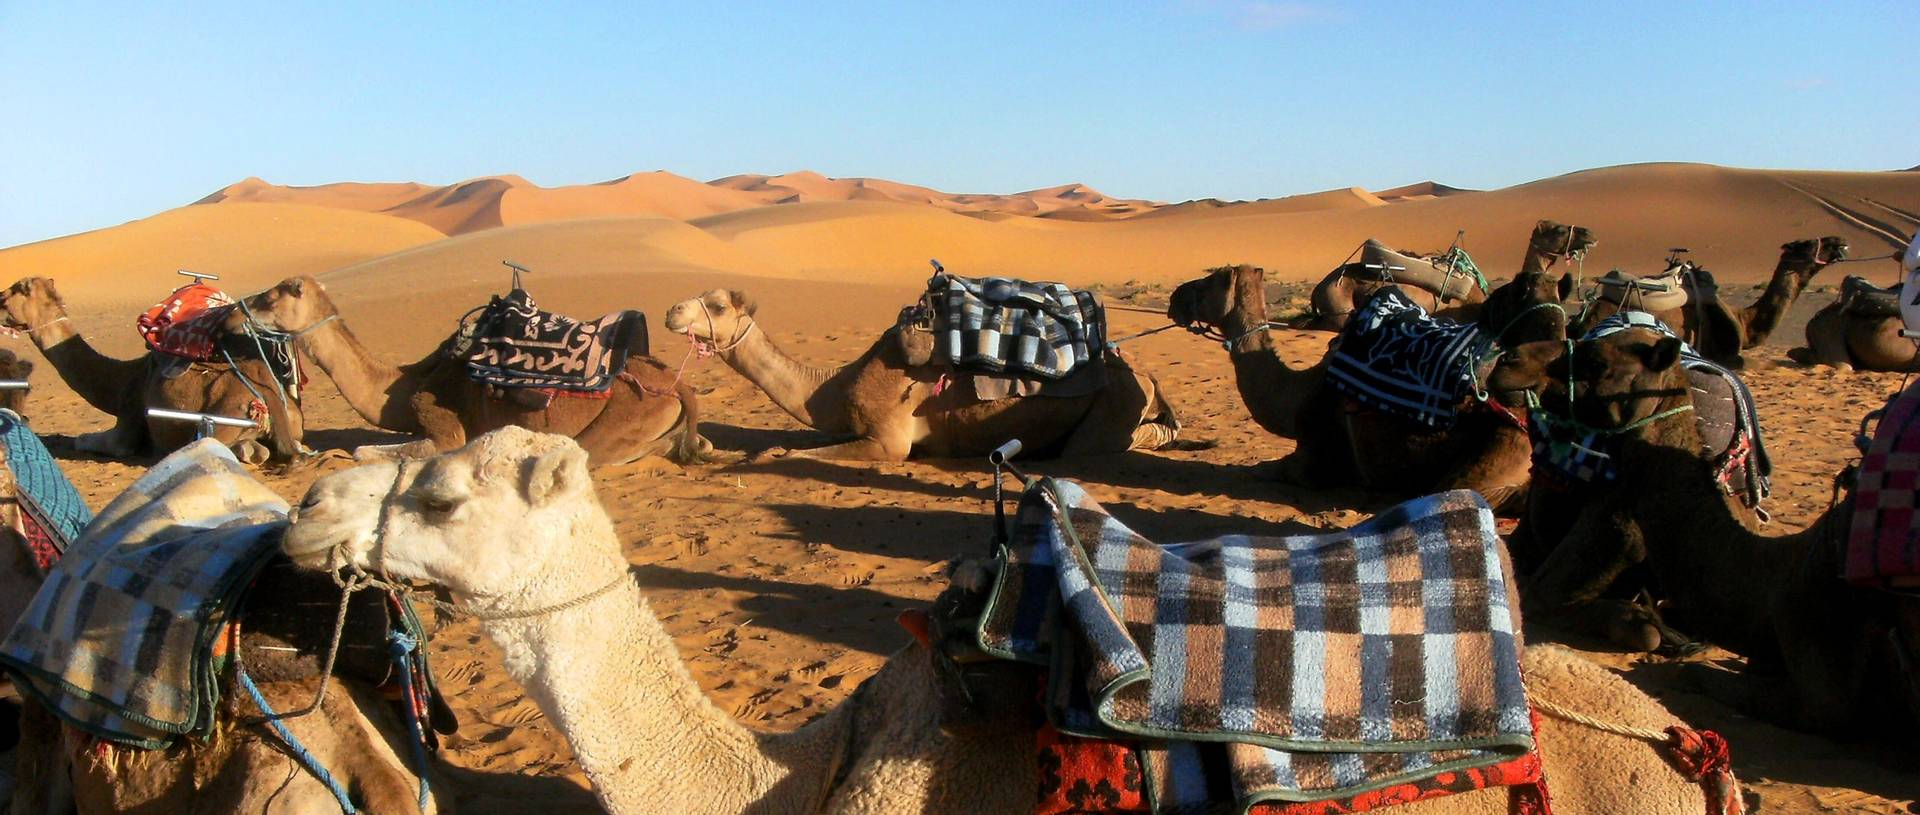 Camels, Ready For Our Trek Into The Desert